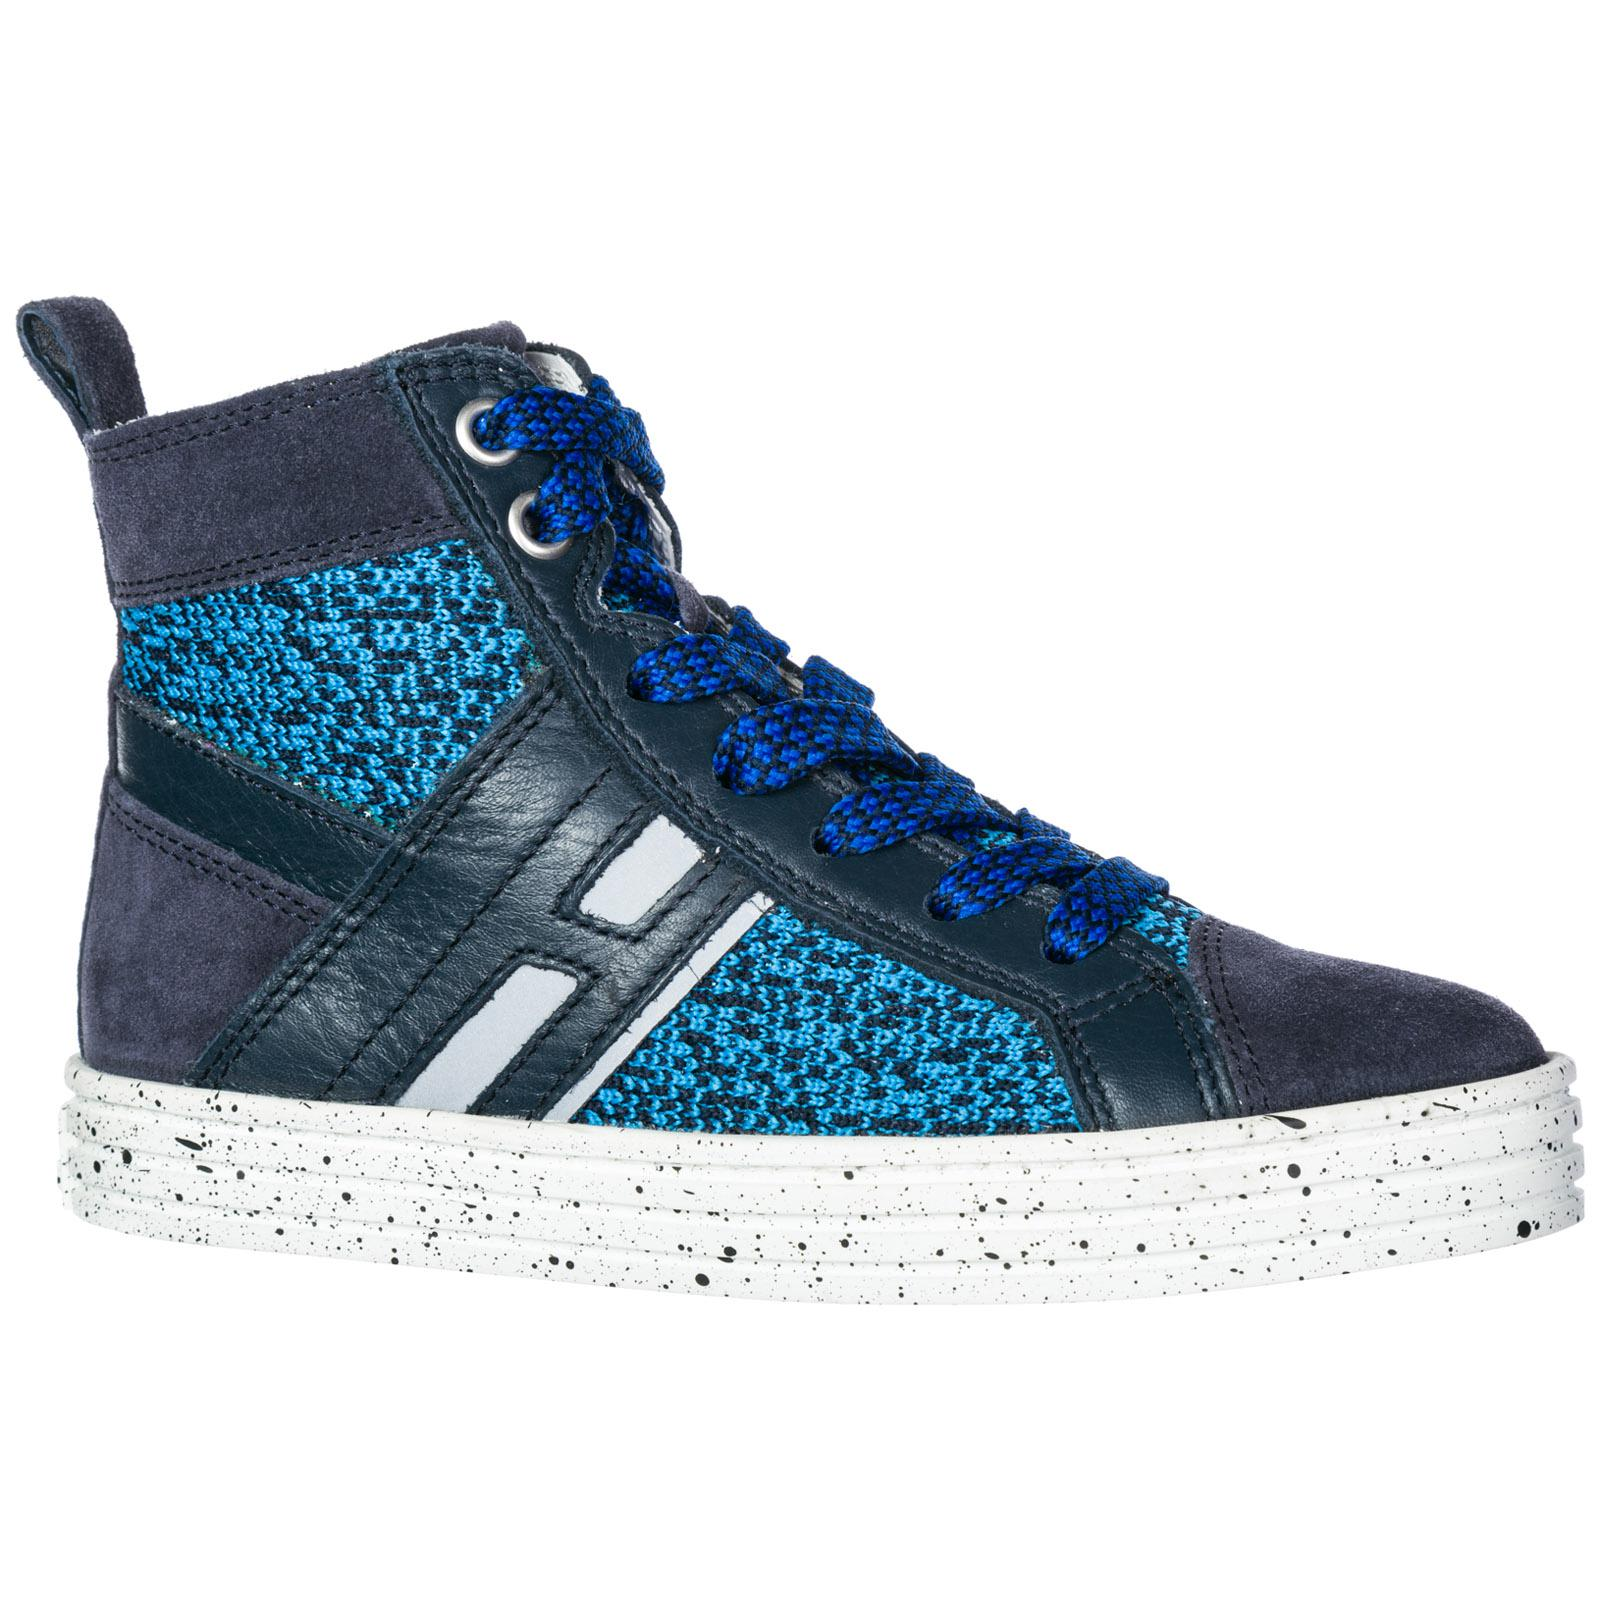 Lyst - Hogan Rebel Boys Shoes Child Sneakers Alte Pelle R141 in Blue ... 15350091837